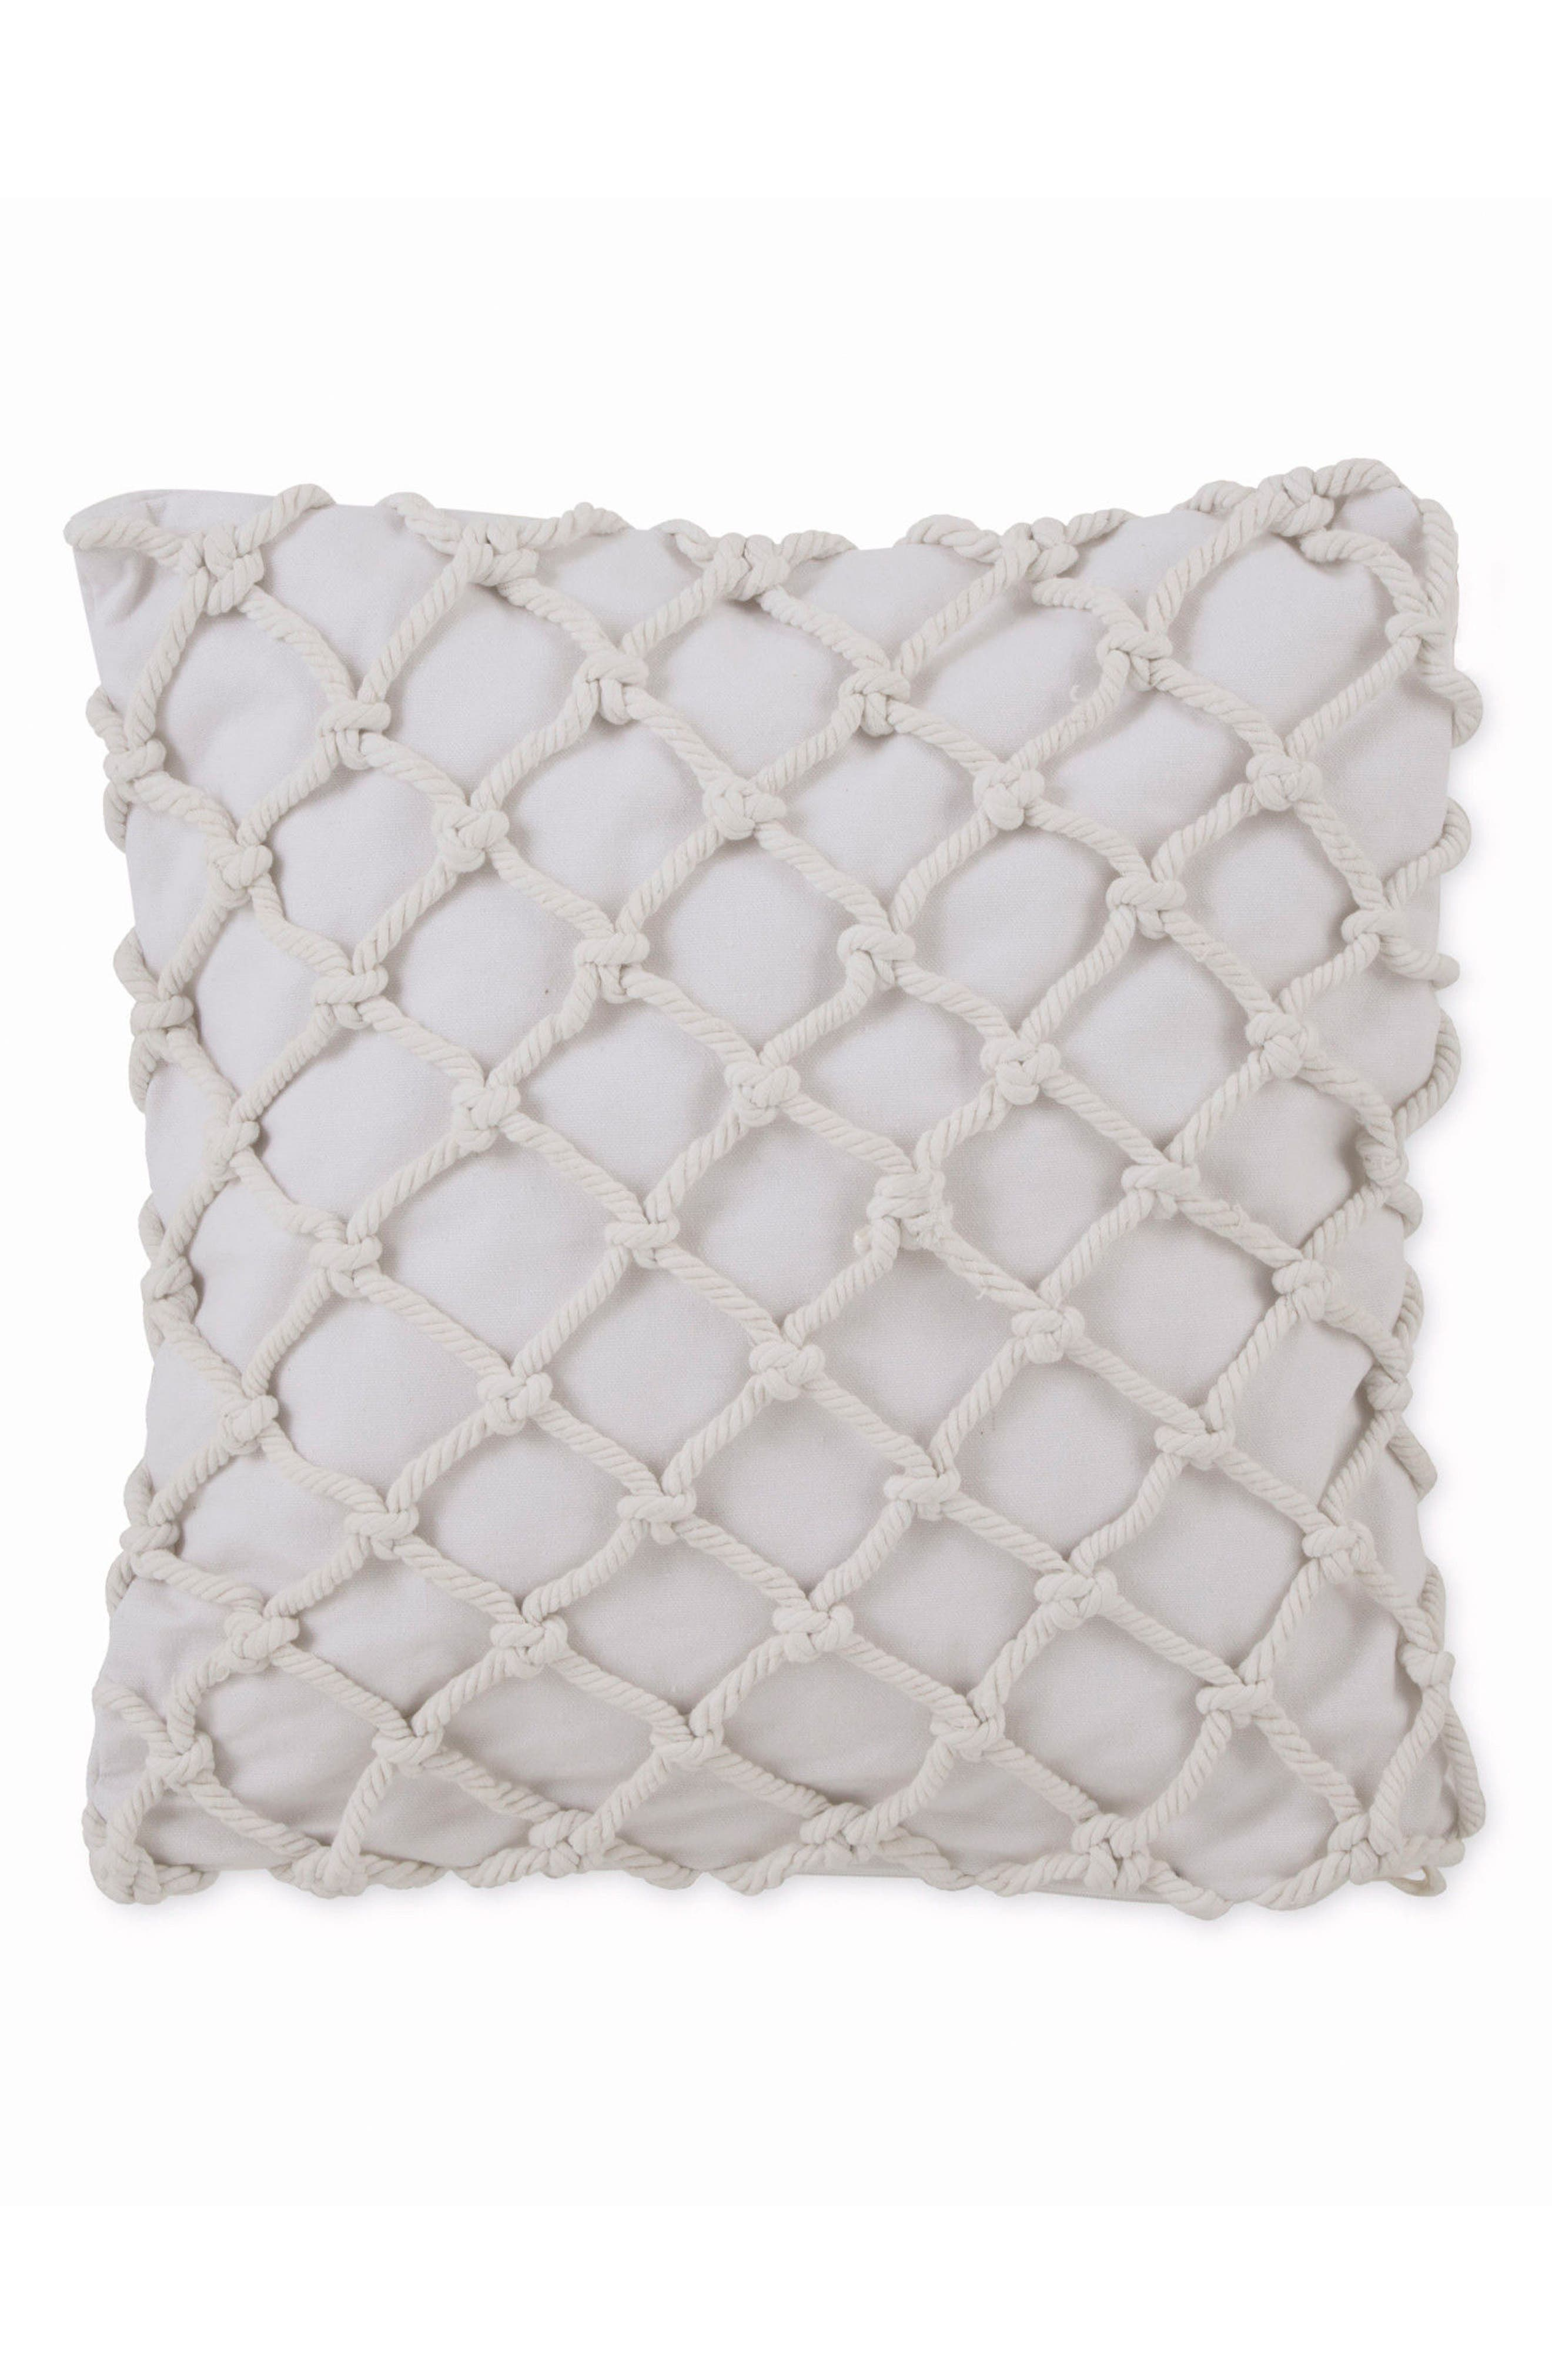 Knotted Rope Square Accent Pillow,                             Main thumbnail 1, color,                             100